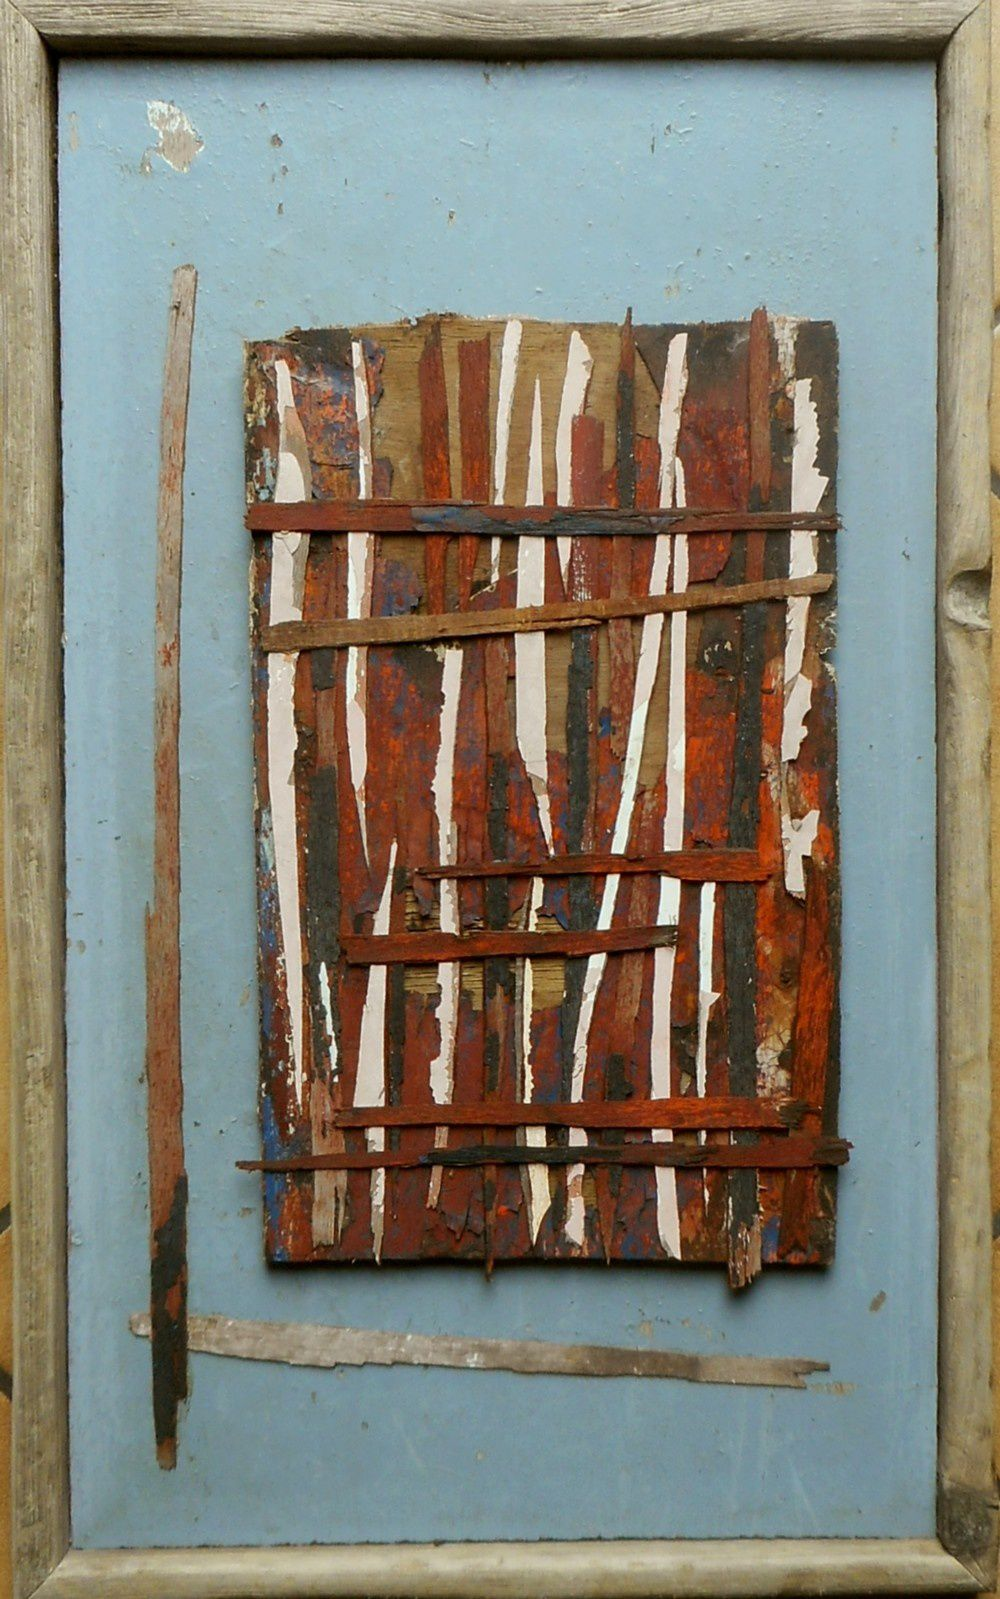 Channel n°42 - Window 2 - assemblage mixte © Pascal Levaillant 2016